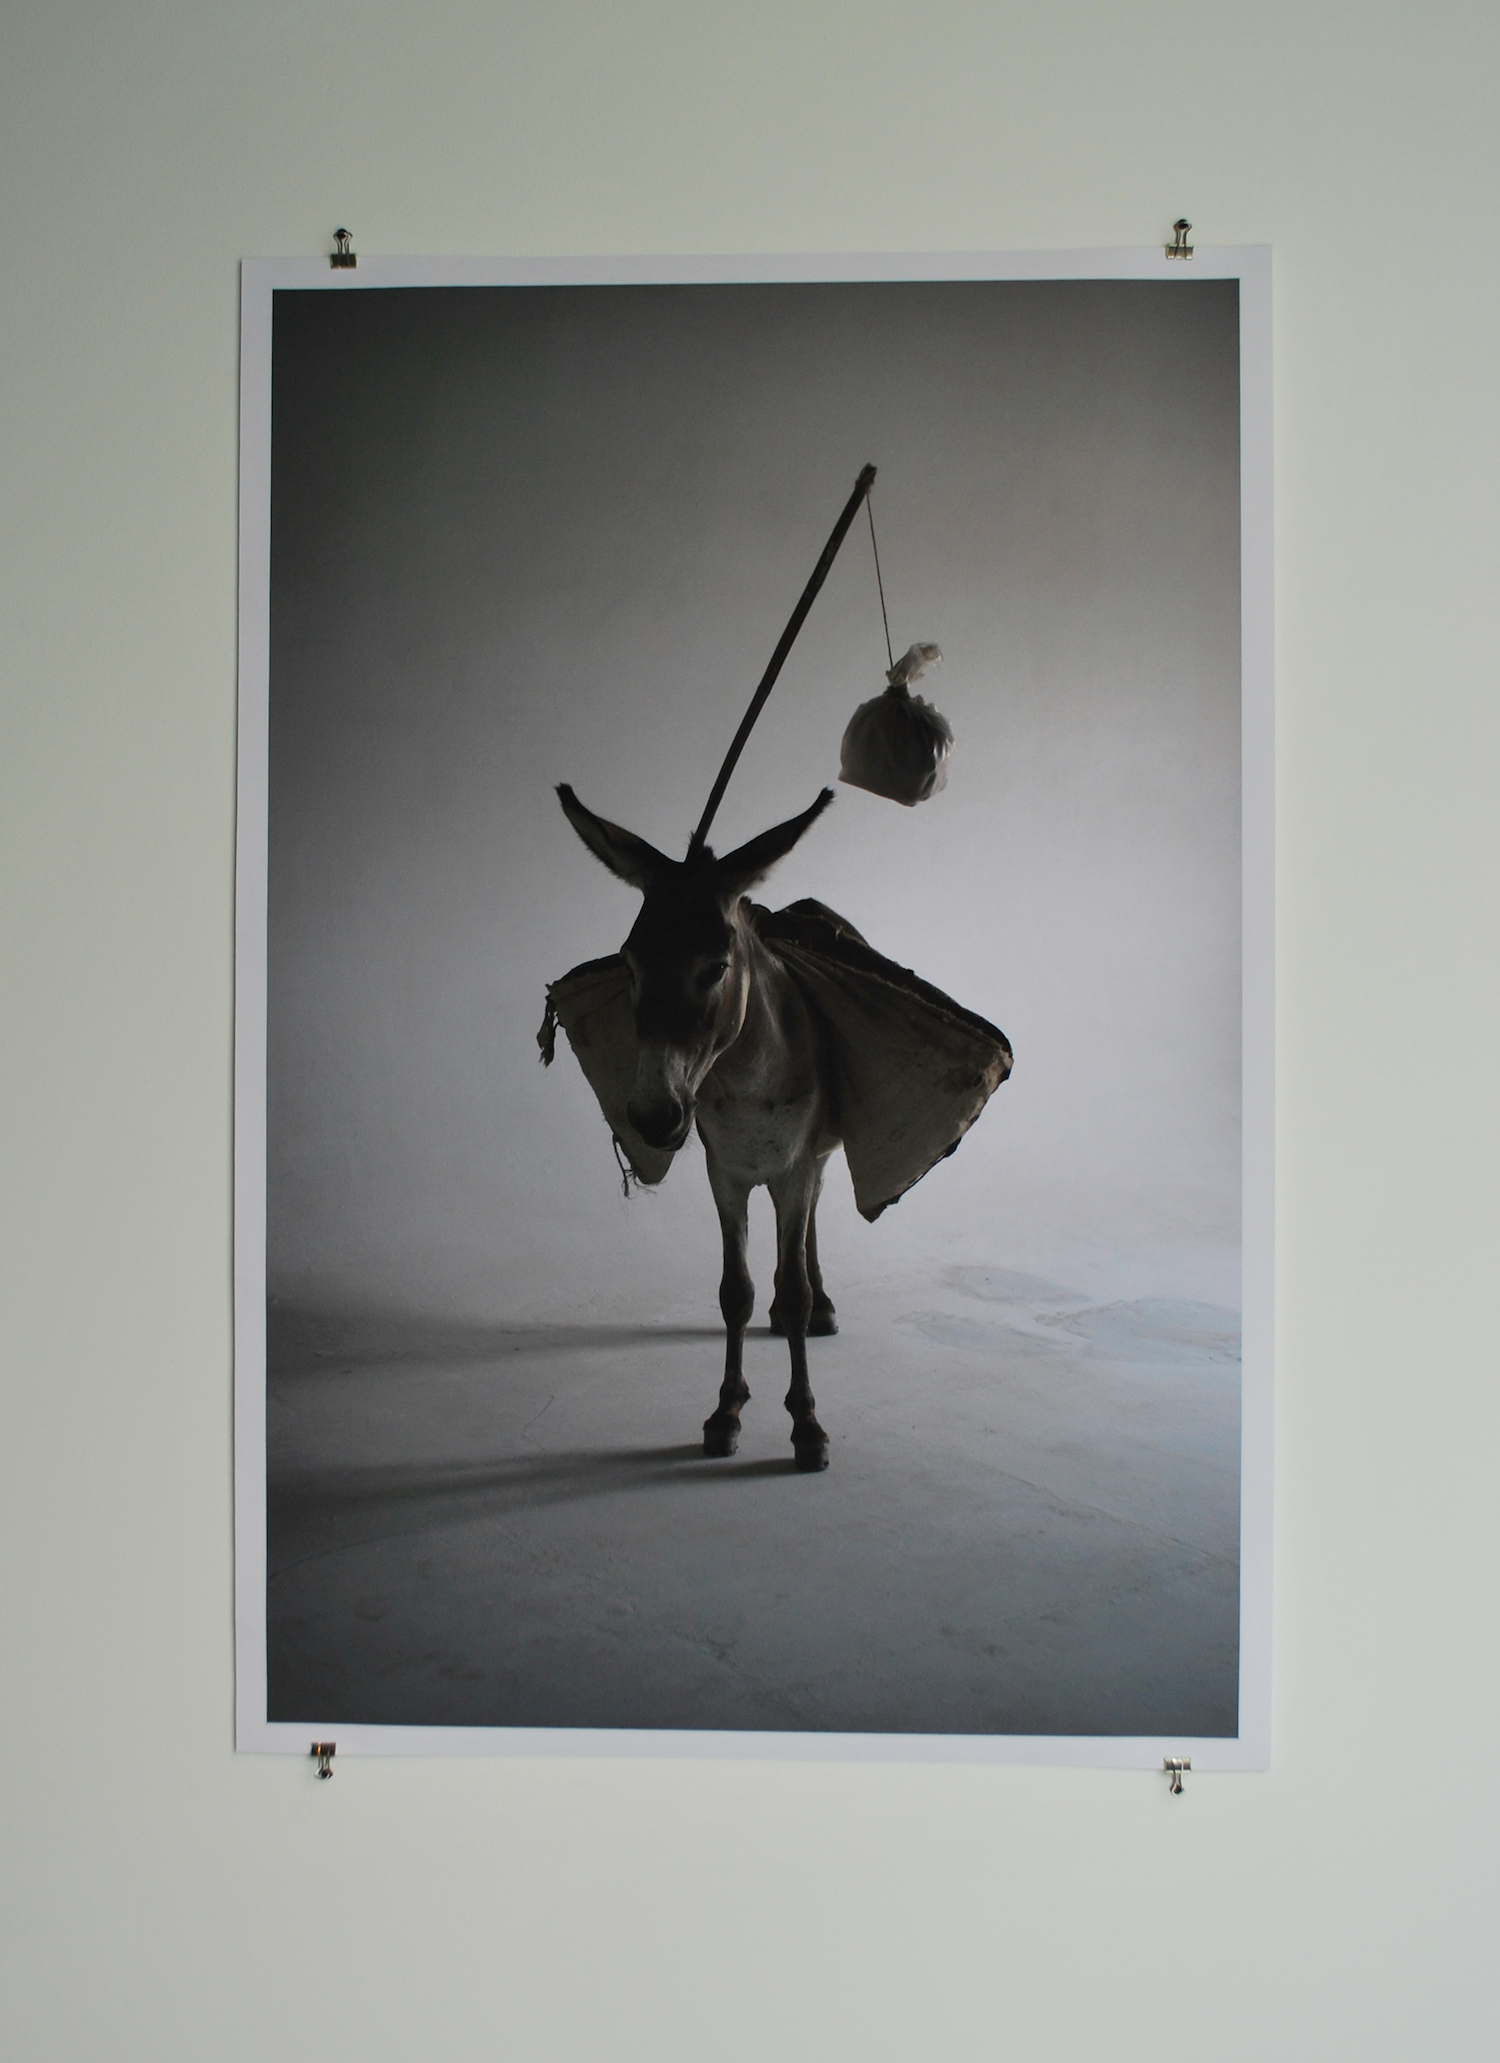 Ehsan Ul Haq  God of Reason 2010 Ink jet print on archival paper 76.2 x 114.3 cm Edition of 3 + 1 AP